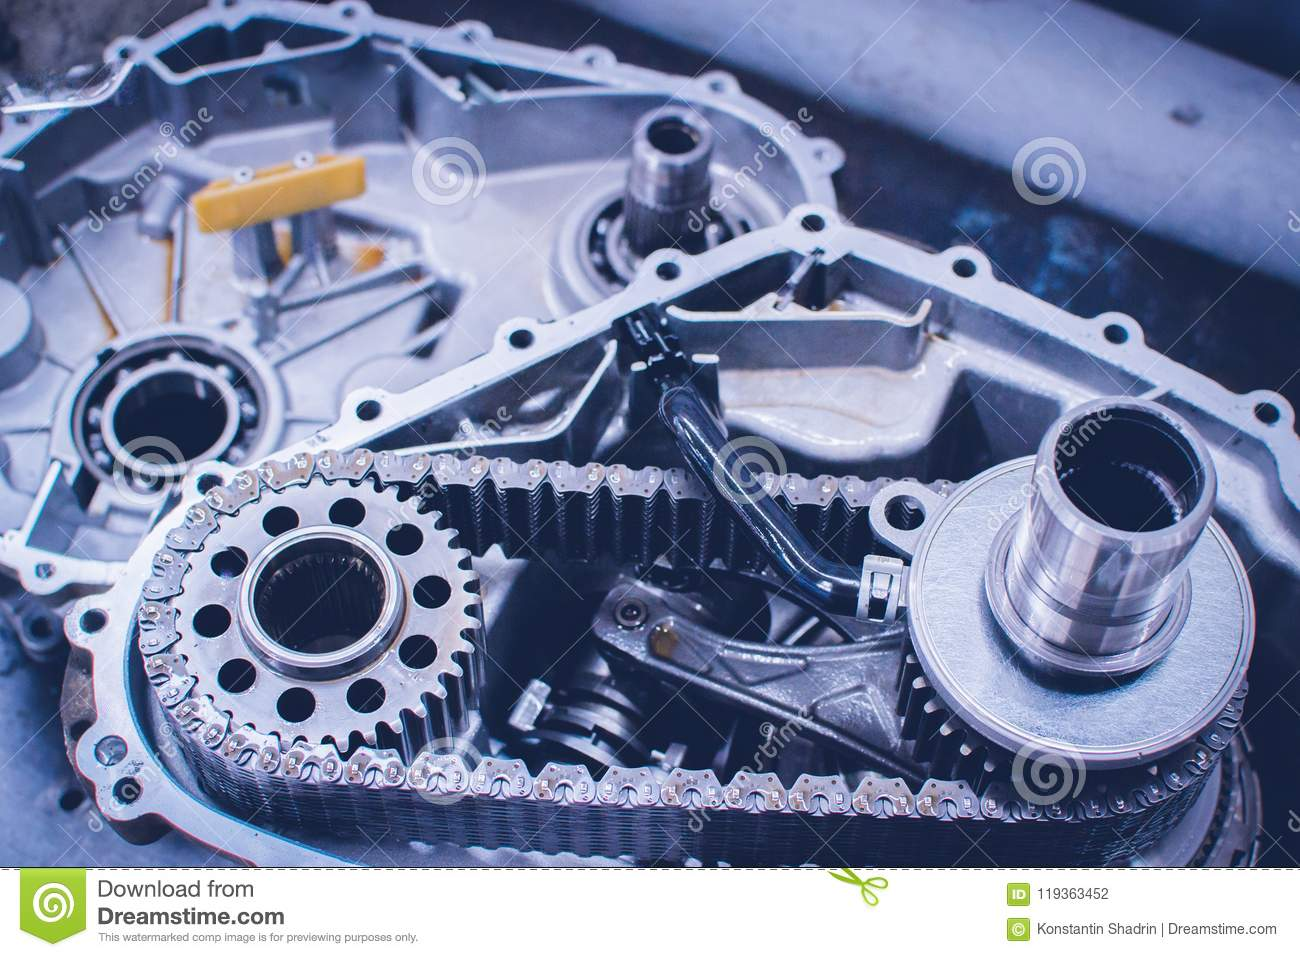 hight resolution of gears from a motorcycle gearbox